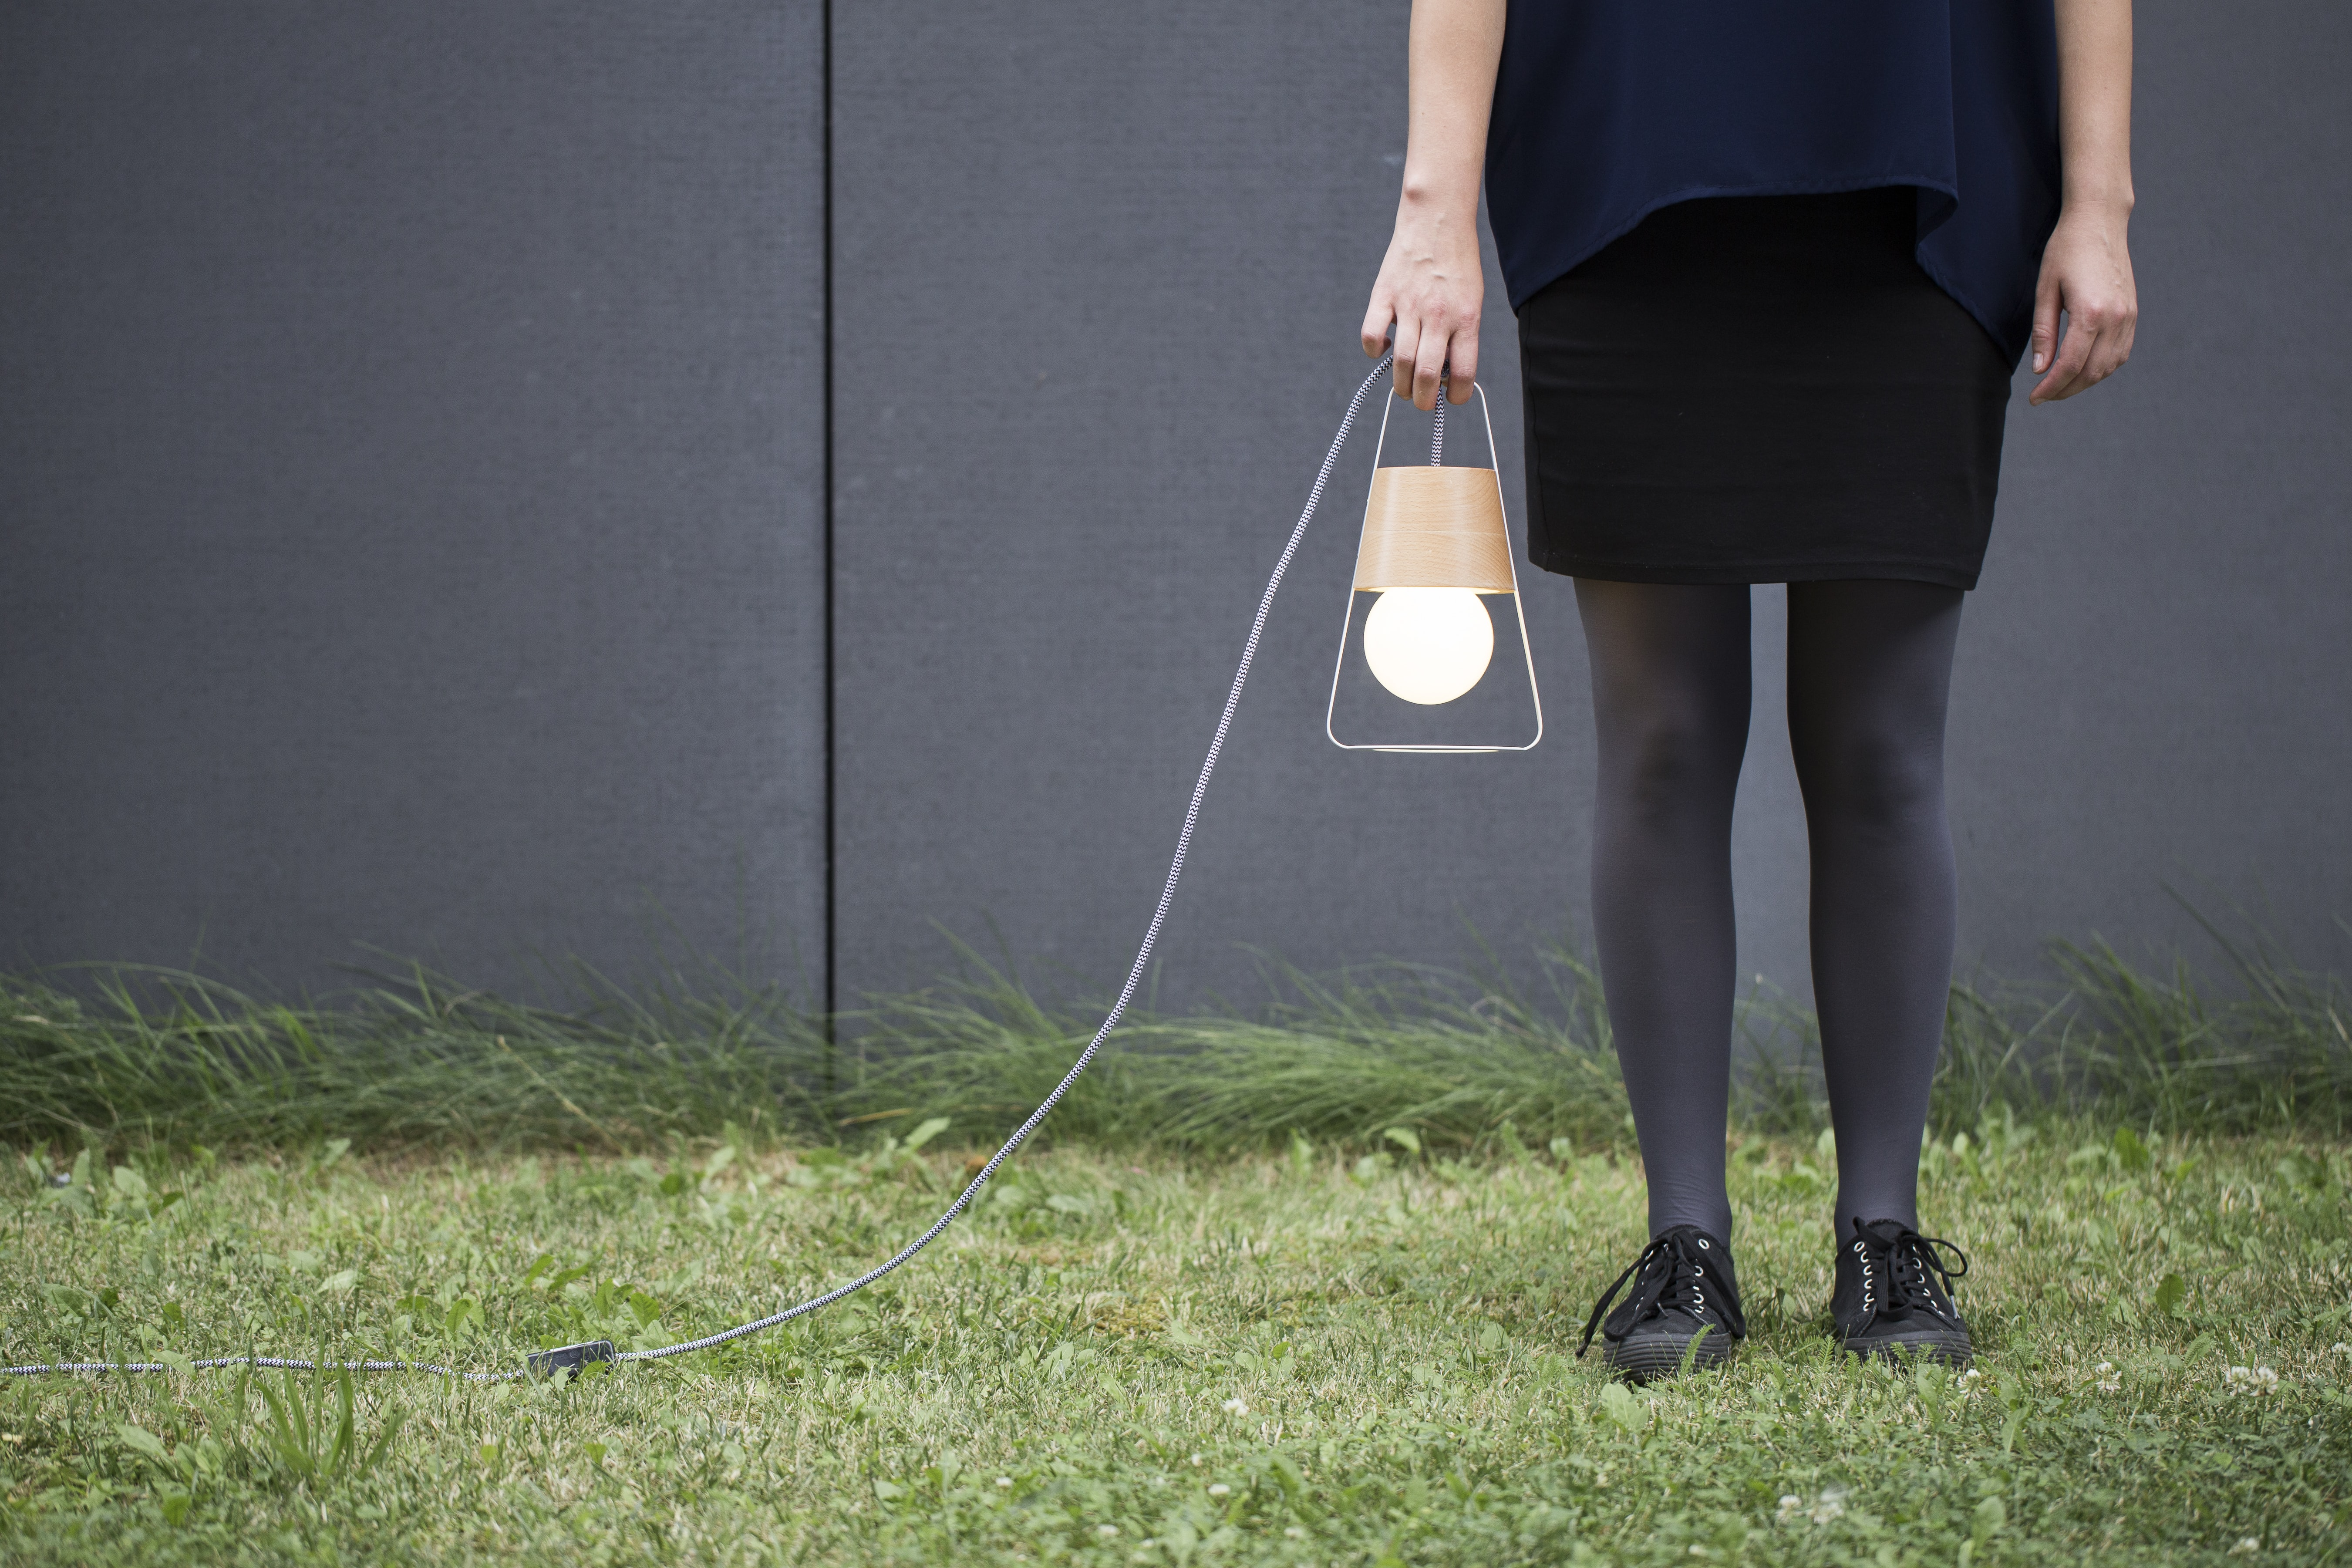 person holding lamp